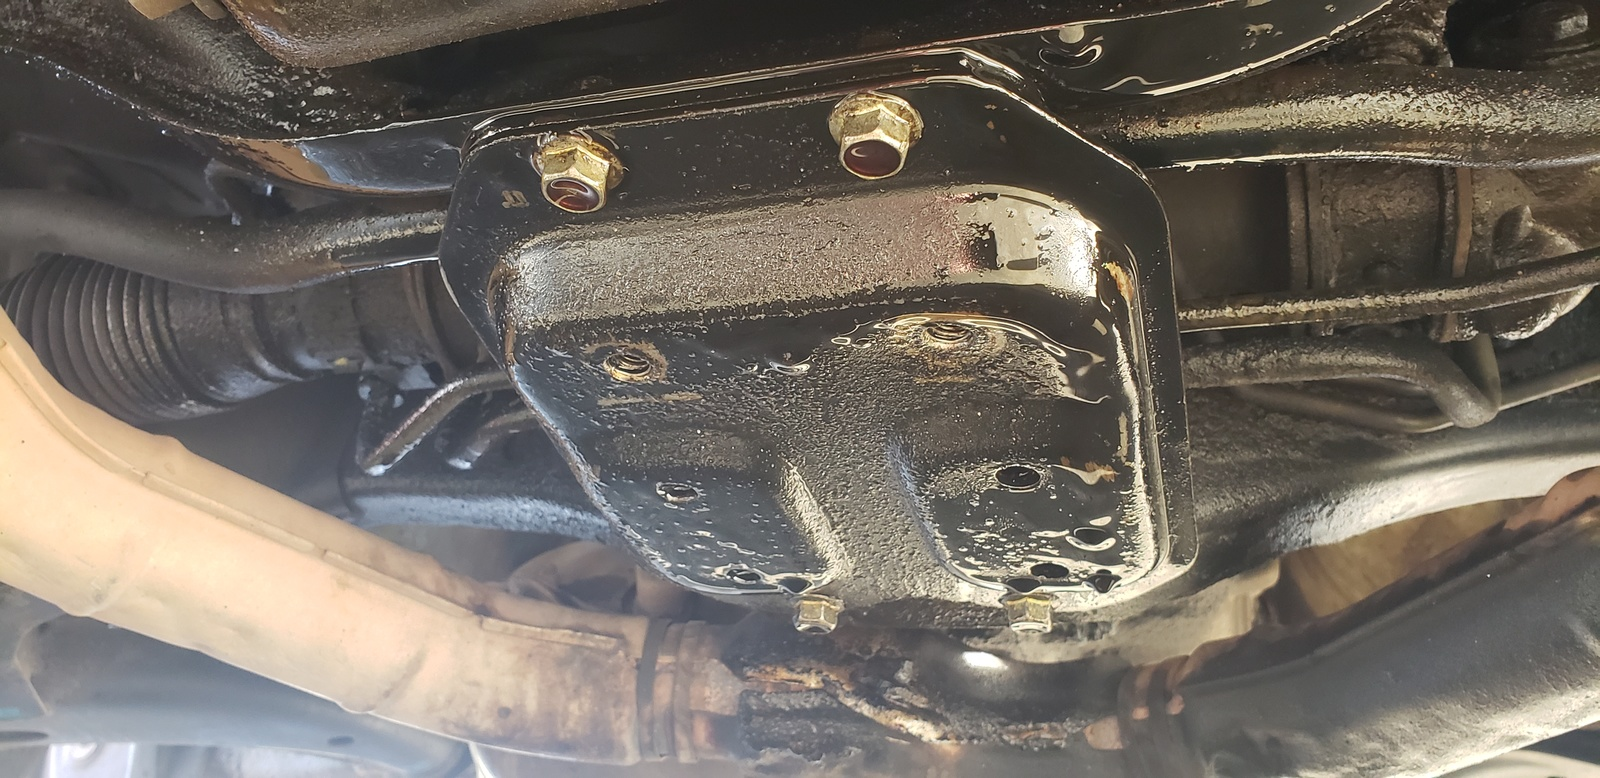 Subaru Forester Questions - 98 Subaru Forester has burning smell